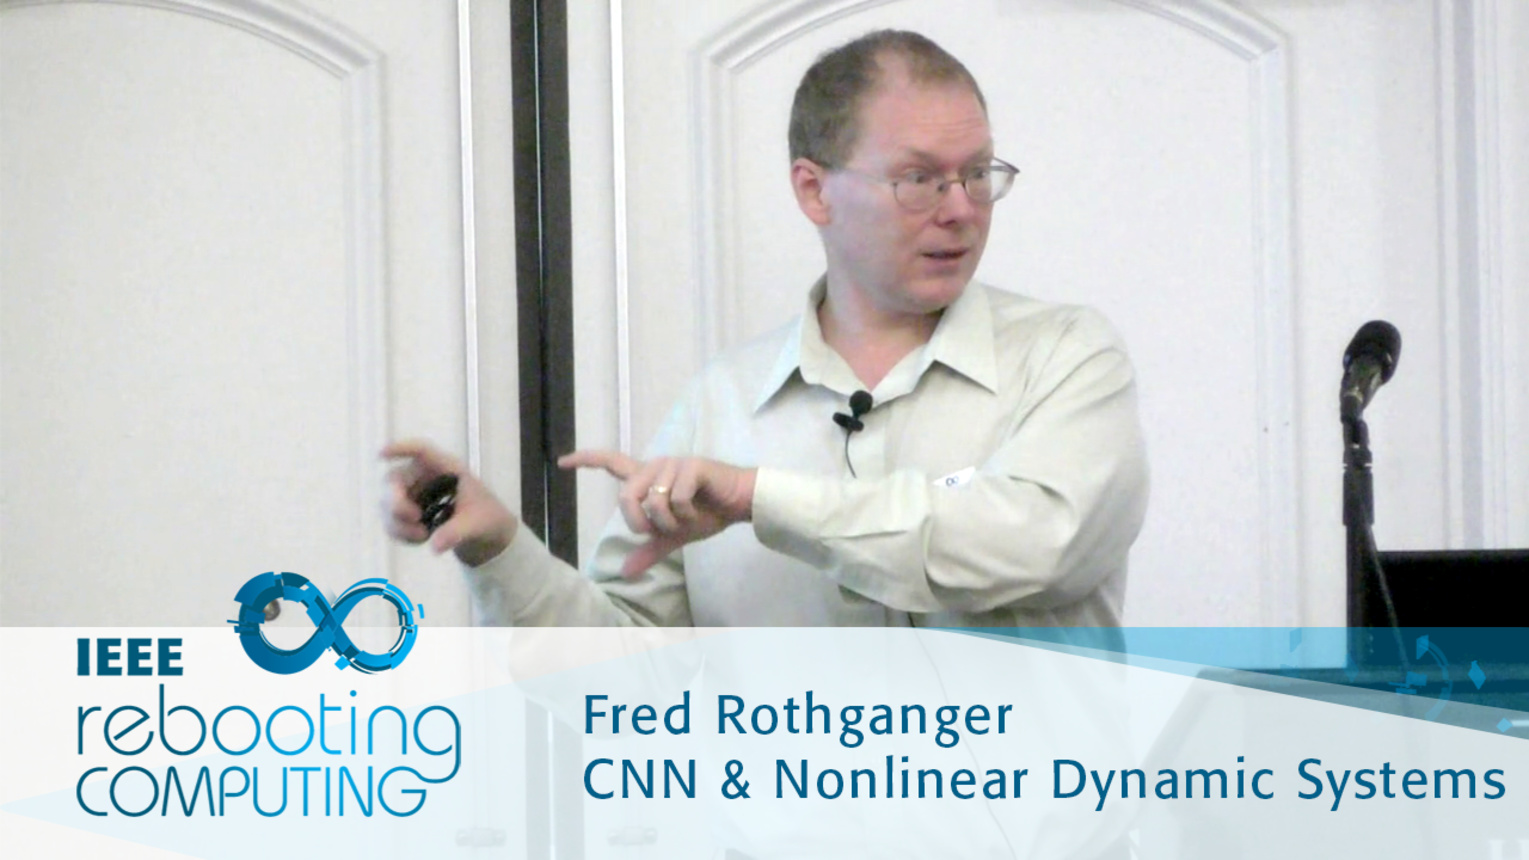 Computing with Dynamical Systems - Fred Rothganger: 2016 International Conference on Rebooting Computing